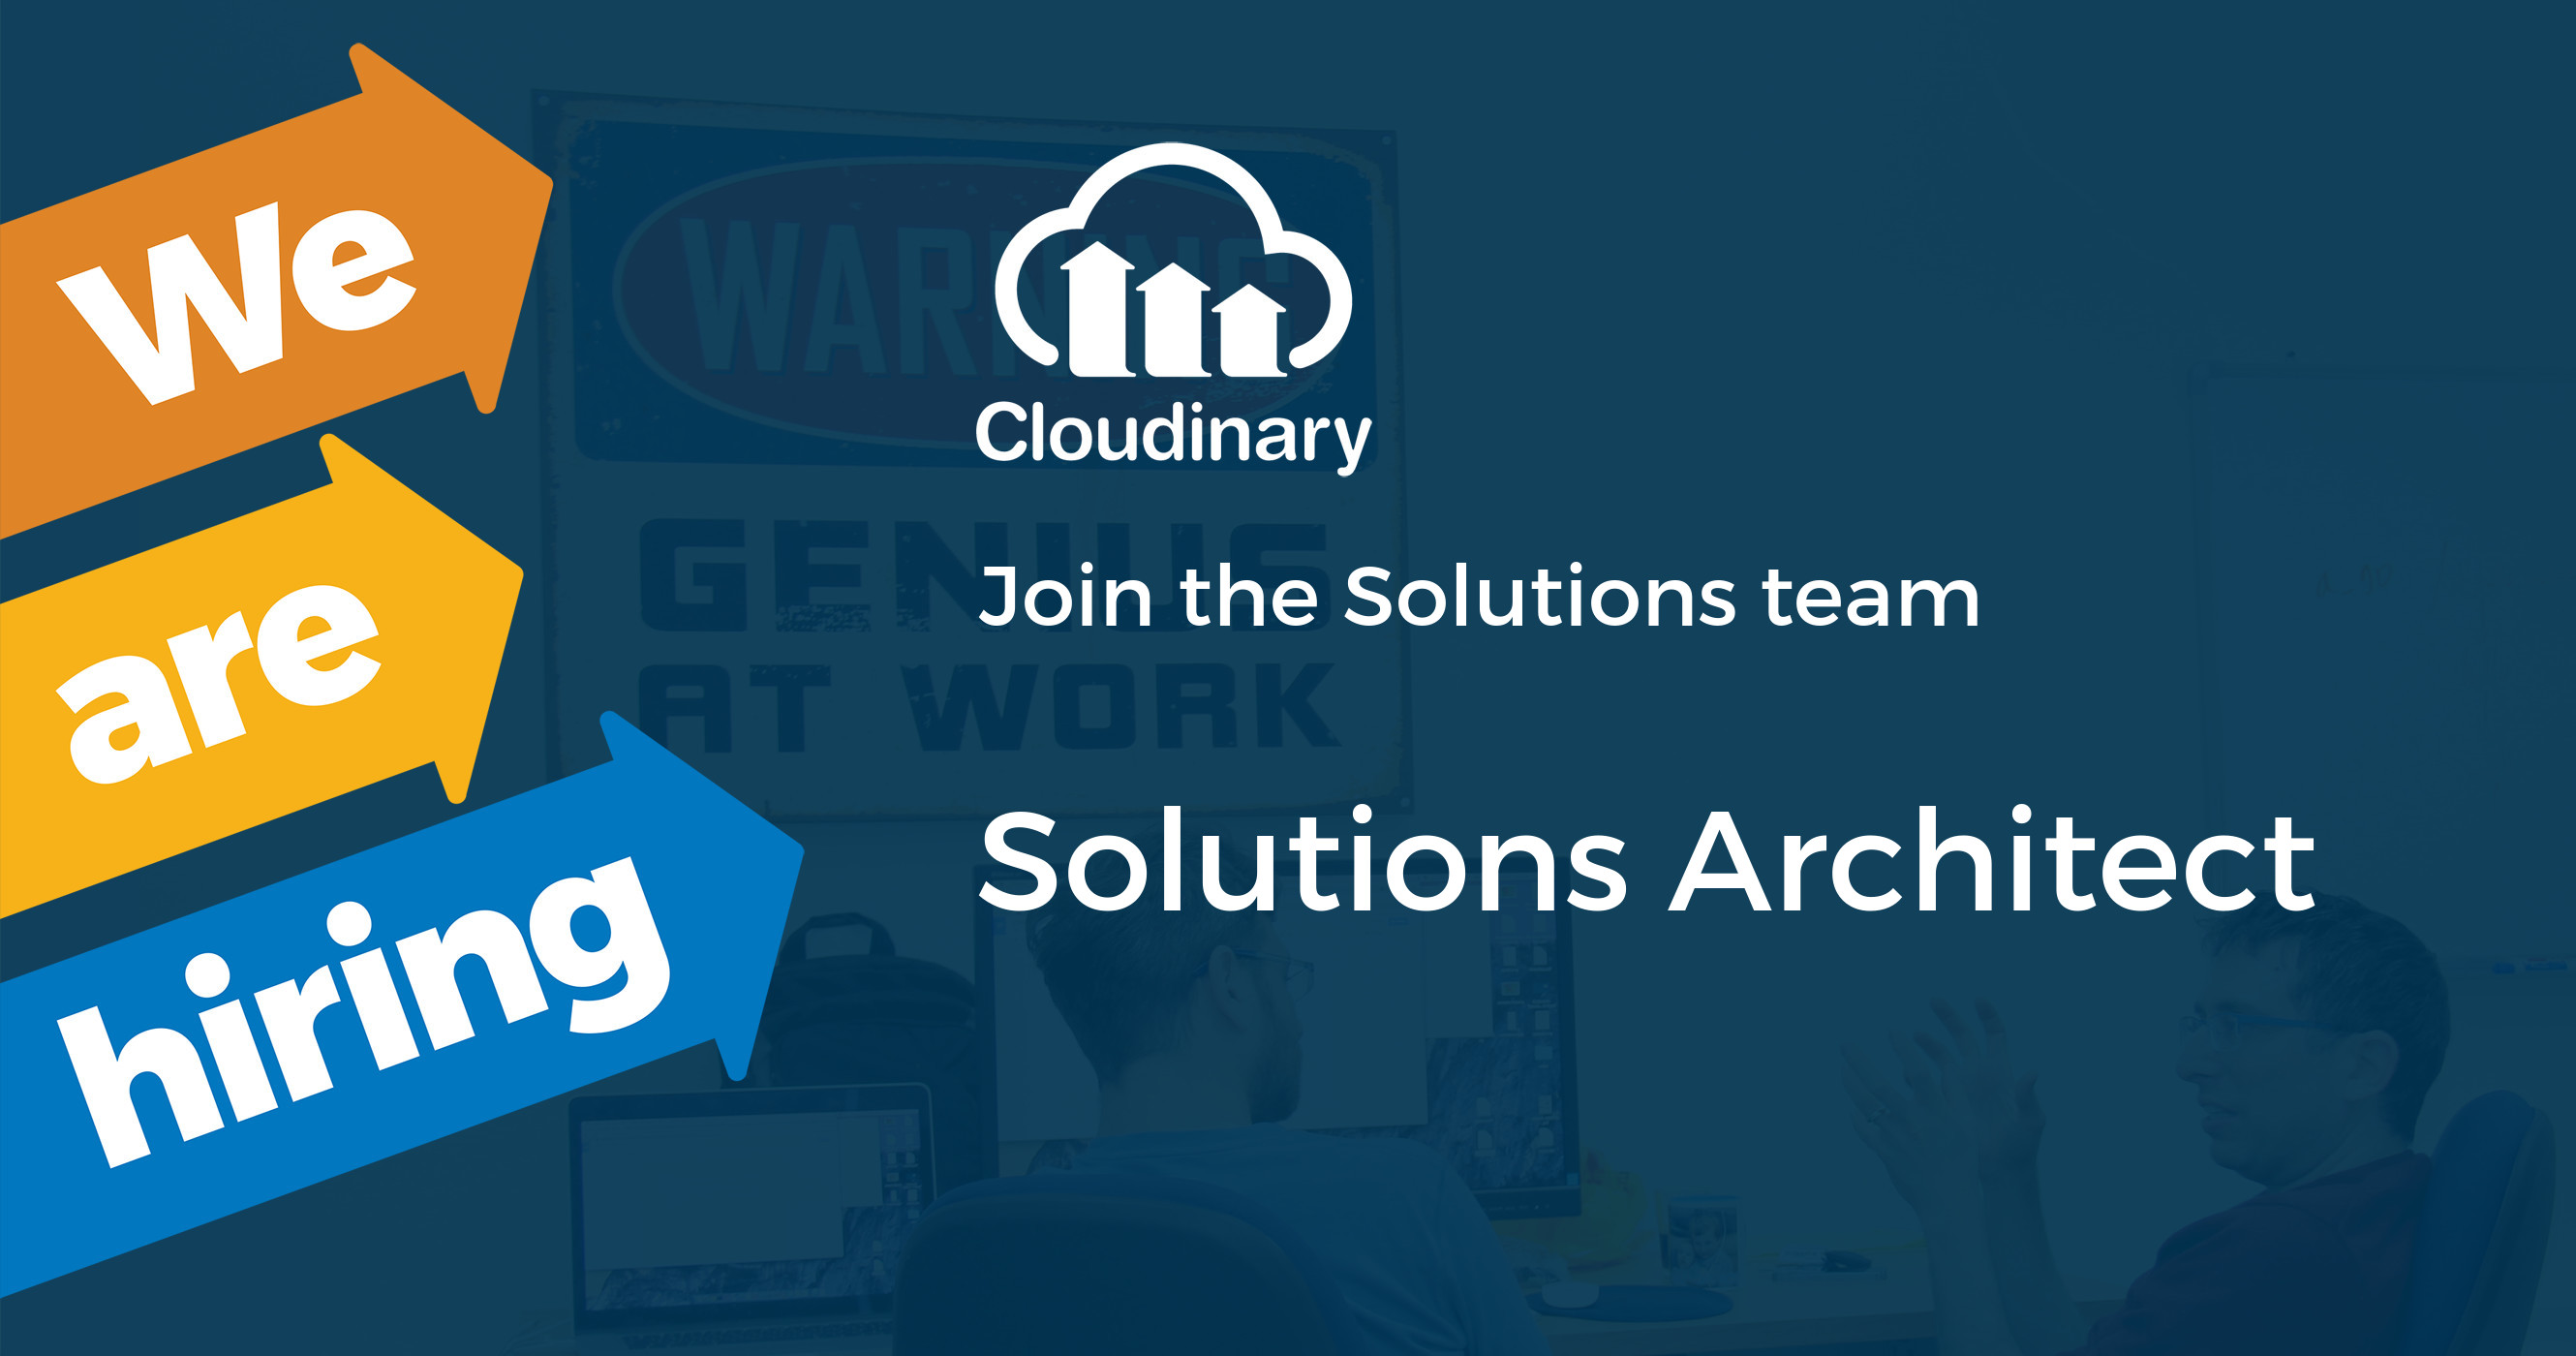 Cloudinary Solutions Architect